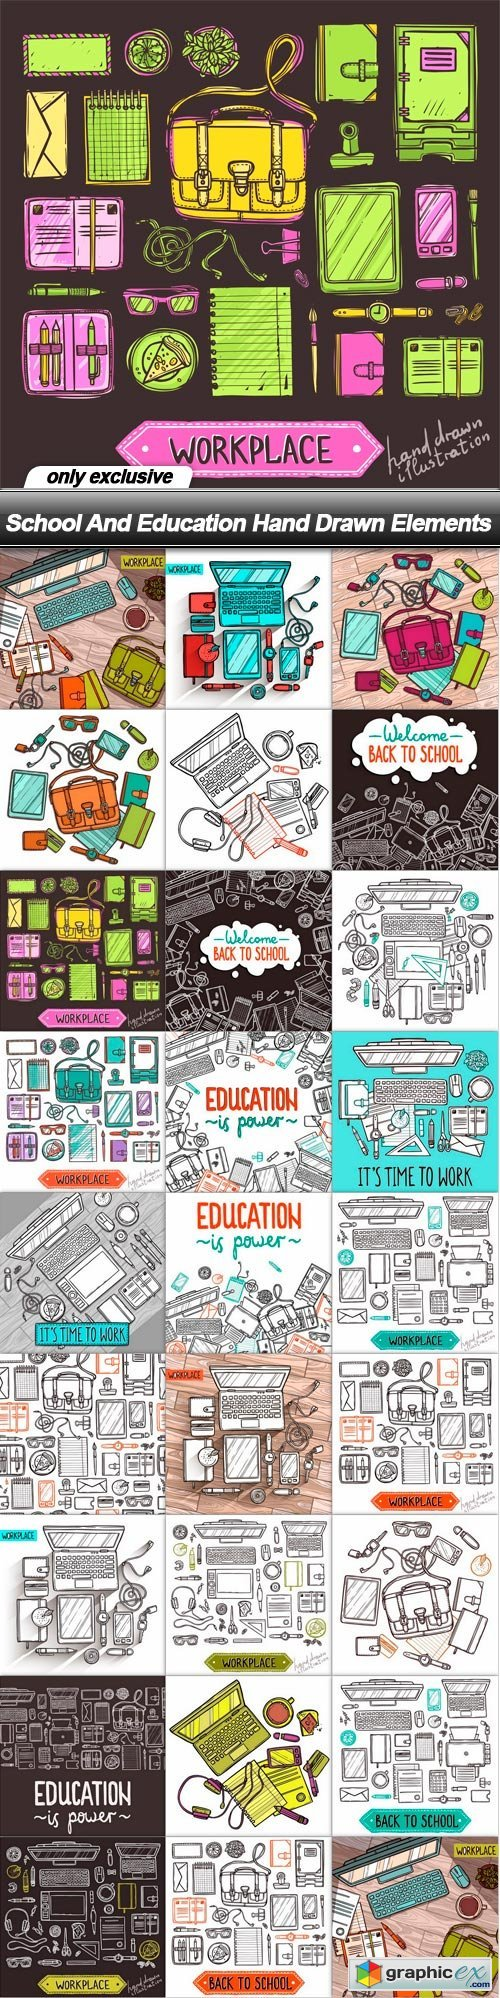 School And Education Hand Drawn Elements - 26 EPS